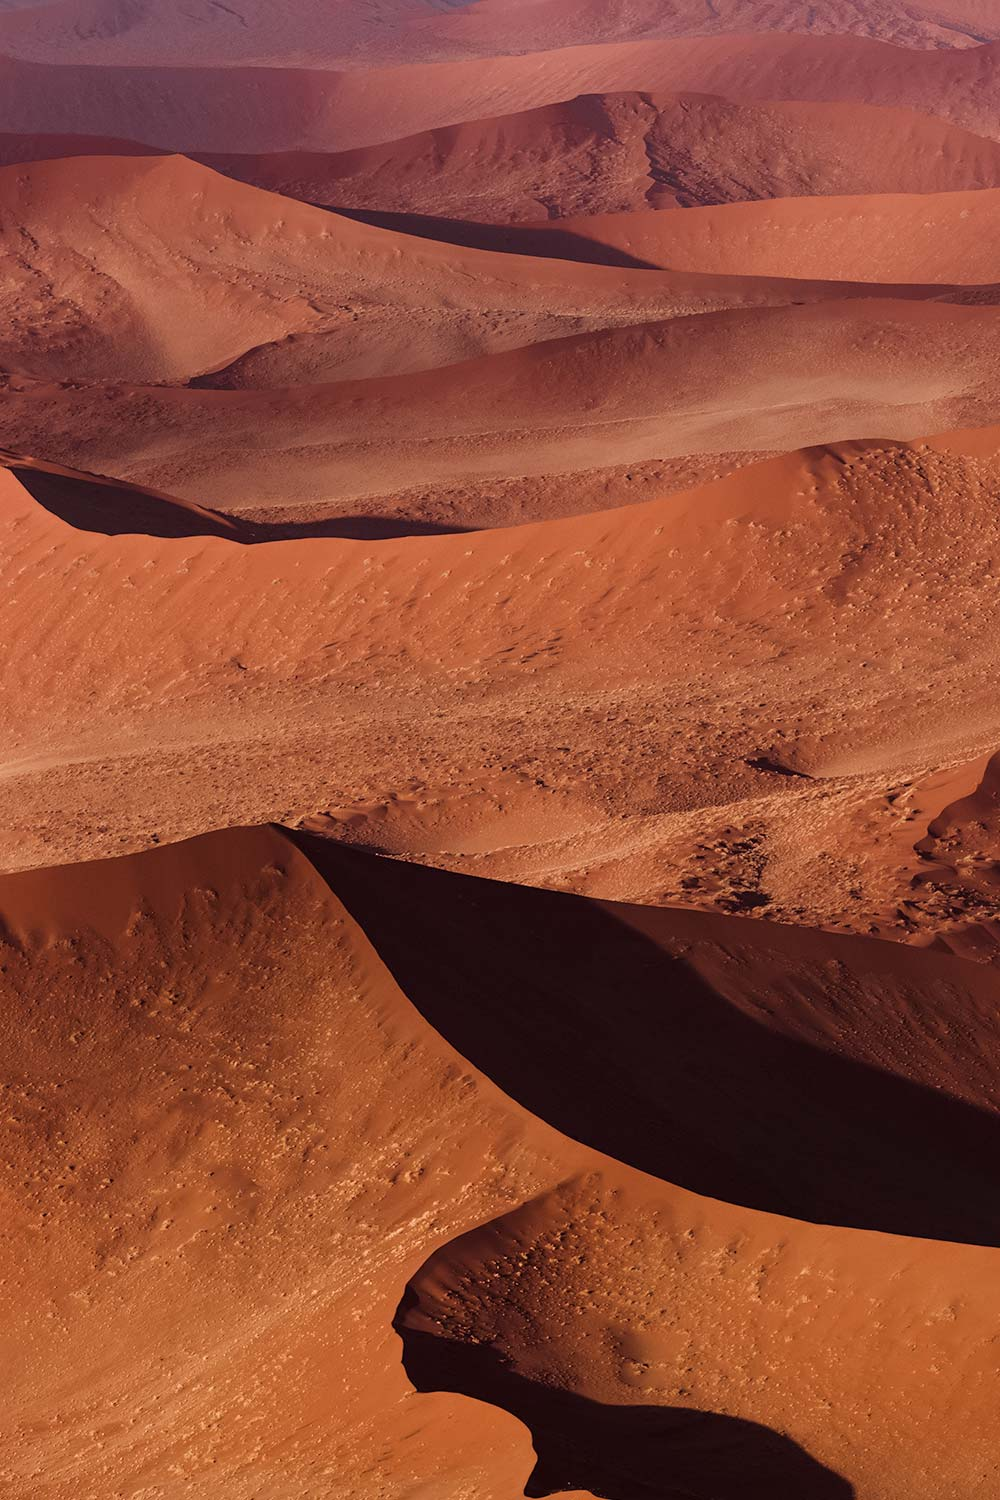 The most romantic of all Sossusvlei activities is admiring the abstract sand shapes of the dunes below.